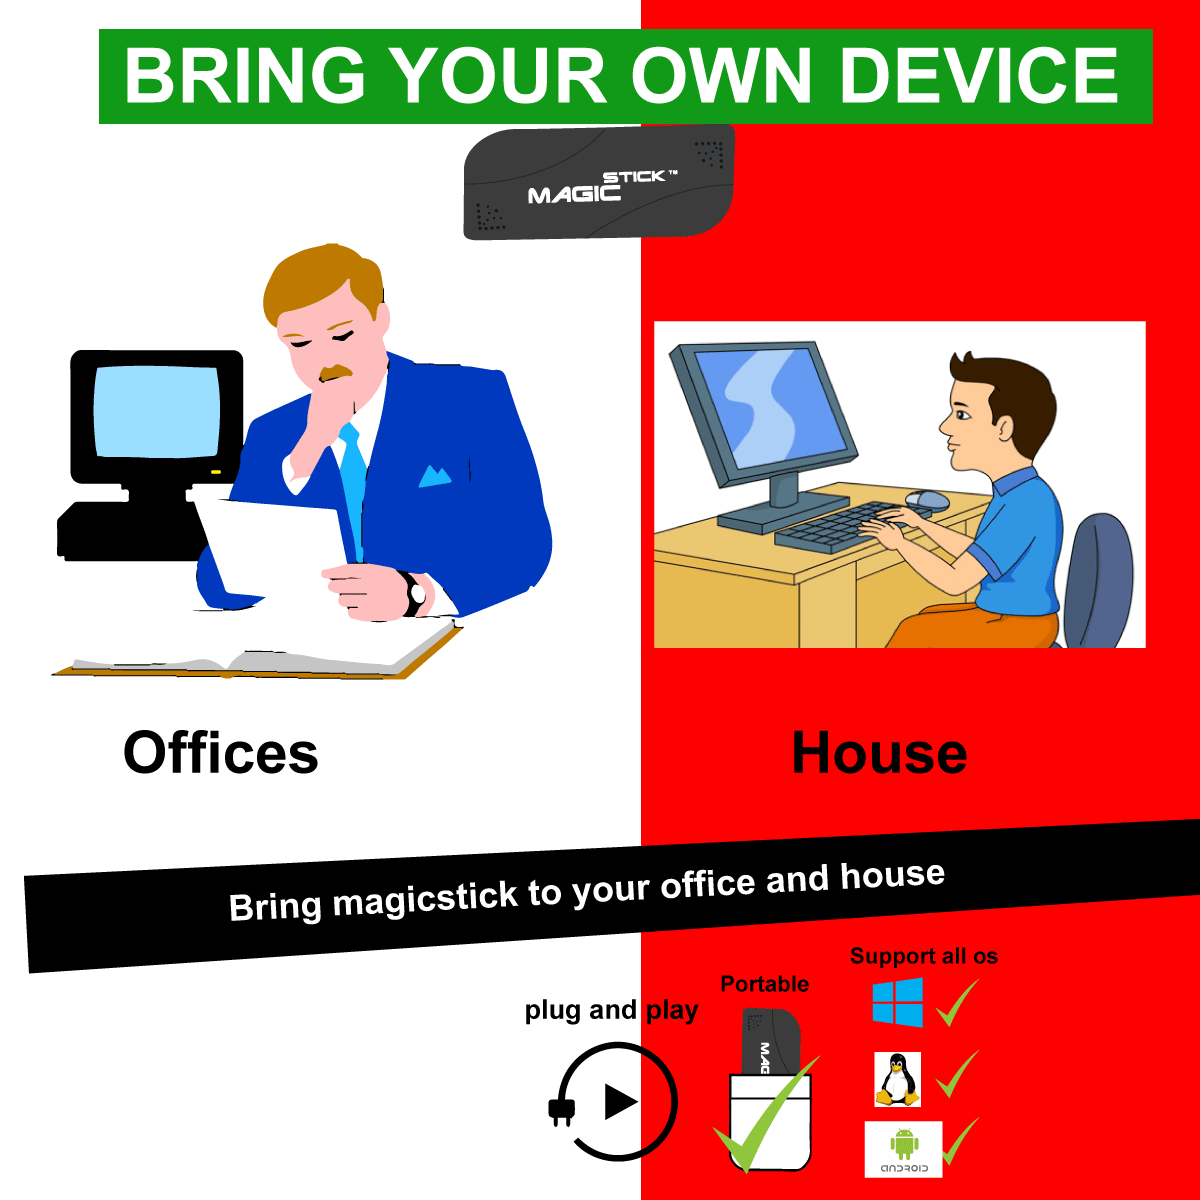 https://www.magicstickone.com/wp-content/uploads/2017/06/byod.png